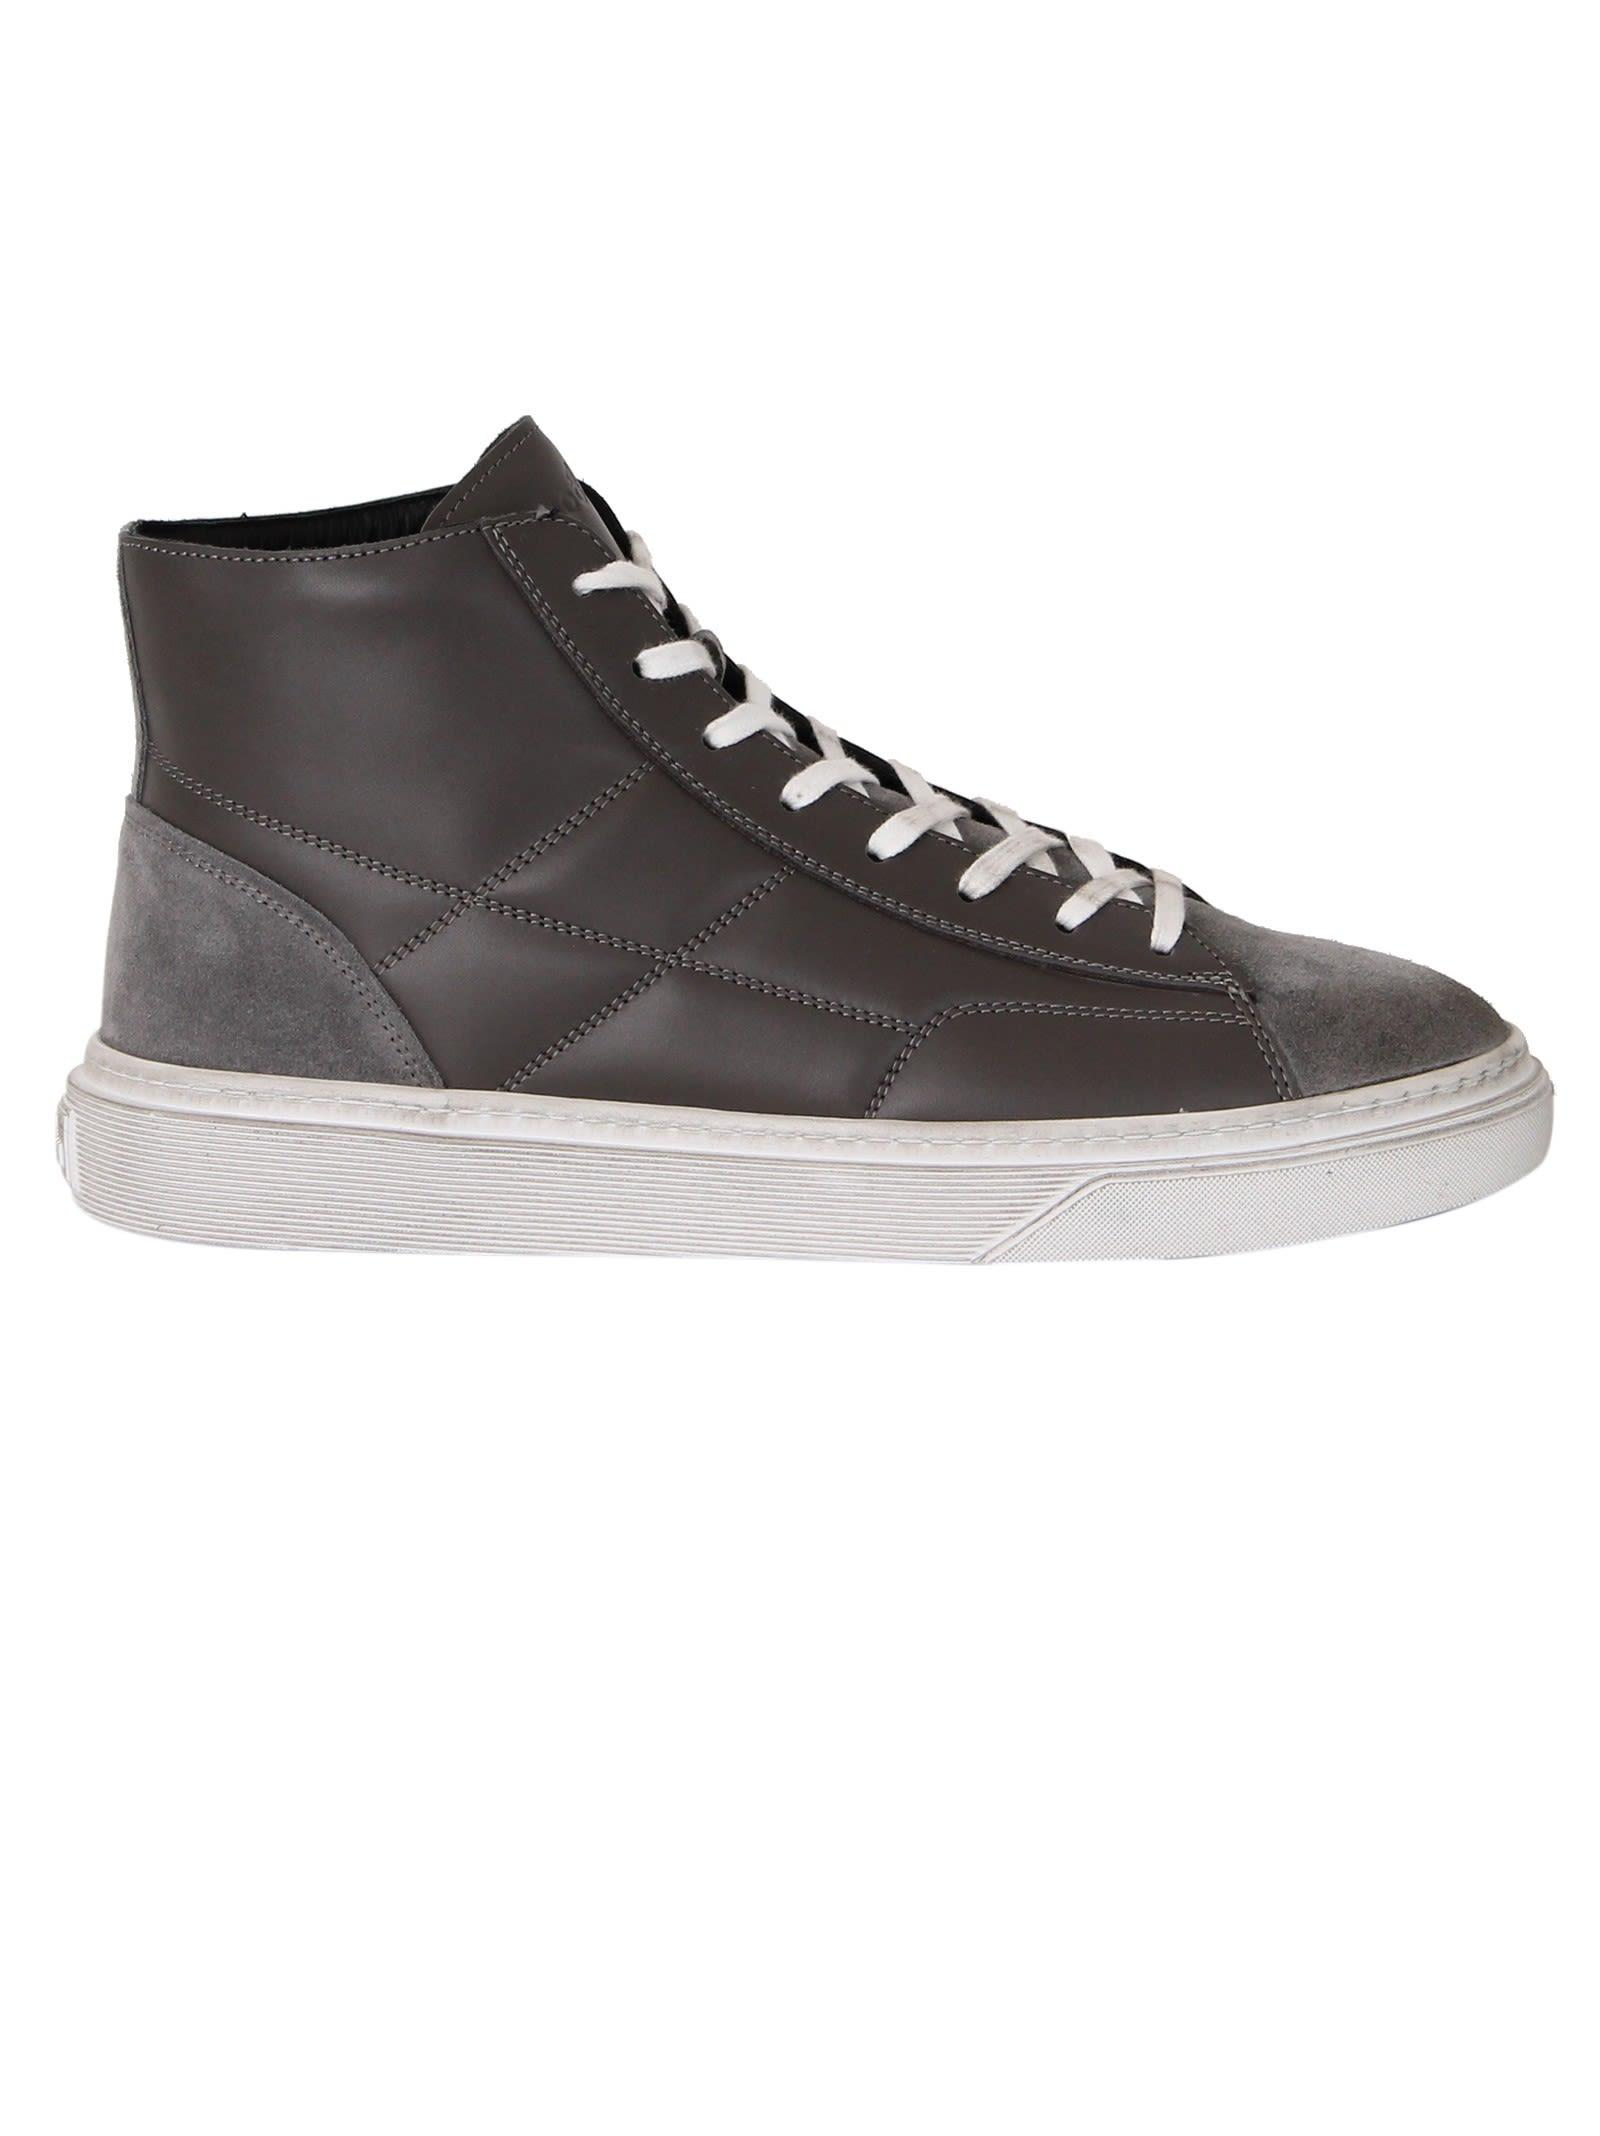 Hogan Men's Shoes High Top Leather Trainers Sneakers H340 In Grey ...